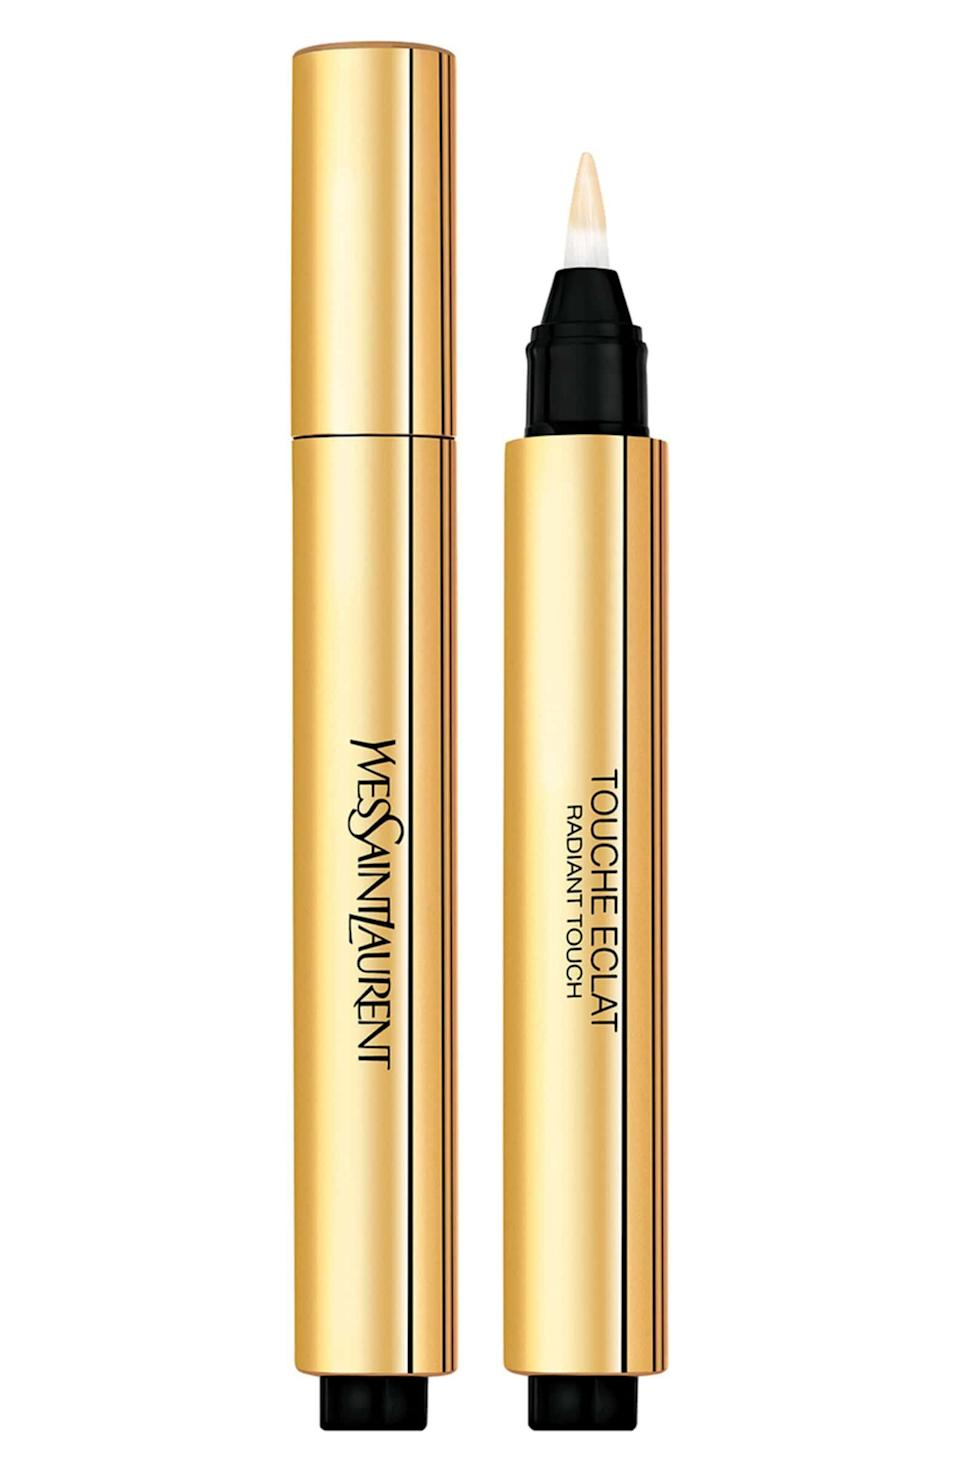 """Markle once told <a href=""""https://www.allure.com/story/meghan-markle-suits-beauty-tips?verso=true"""" target=""""_blank"""" rel=""""noopener noreferrer"""">Allure</a> YSL's Touche Eclat concealer was part of her five-minute makeup routine.<strong><br /><a href=""""https://shop.nordstrom.com/s/yves-saint-laurent-touche-eclat-radiant-touch/2797674"""" target=""""_blank"""" rel=""""noopener noreferrer""""><br />Yves Saint Laurent Touche Eclat Radiant Touch concealer</a>, $38</strong>"""